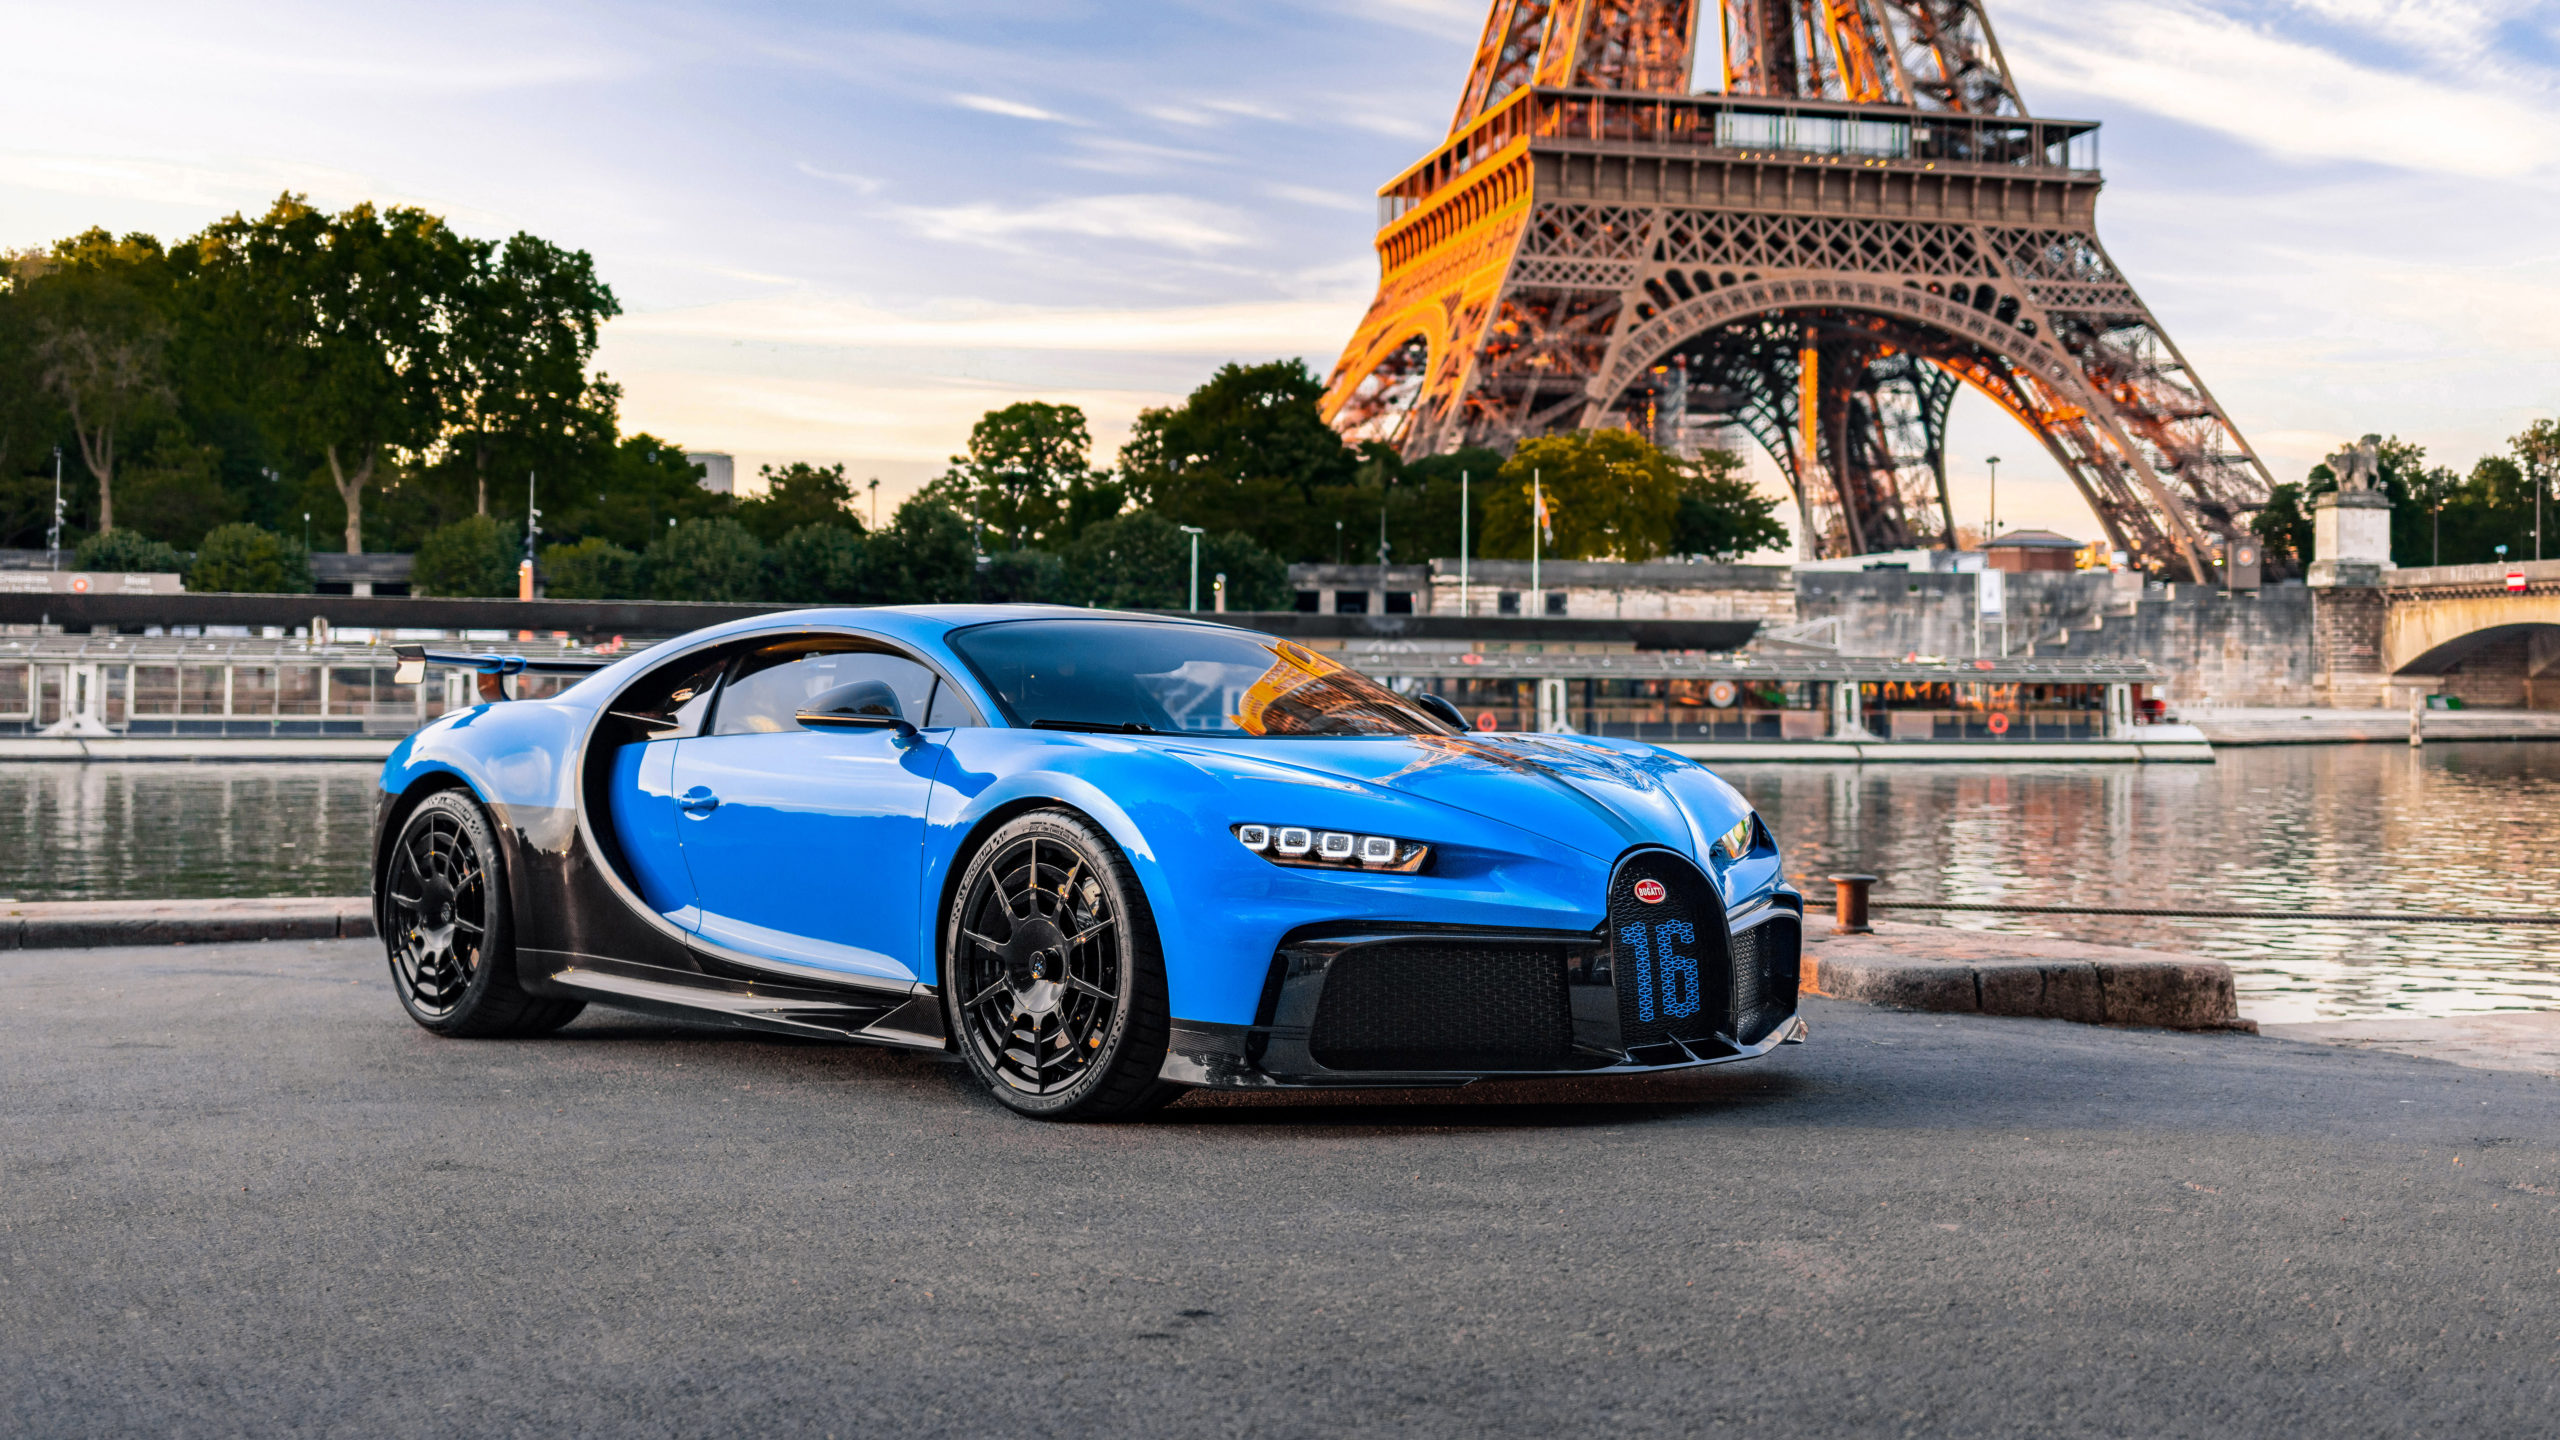 Everyone dreams of having a sports car at some point in their lives. Bugatti Chiron Pur Sport 2020 5k 7 Wallpaper Hd Car Wallpapers Book Your 1 Source For Free Download Hd 4k High Quality Wallpapers